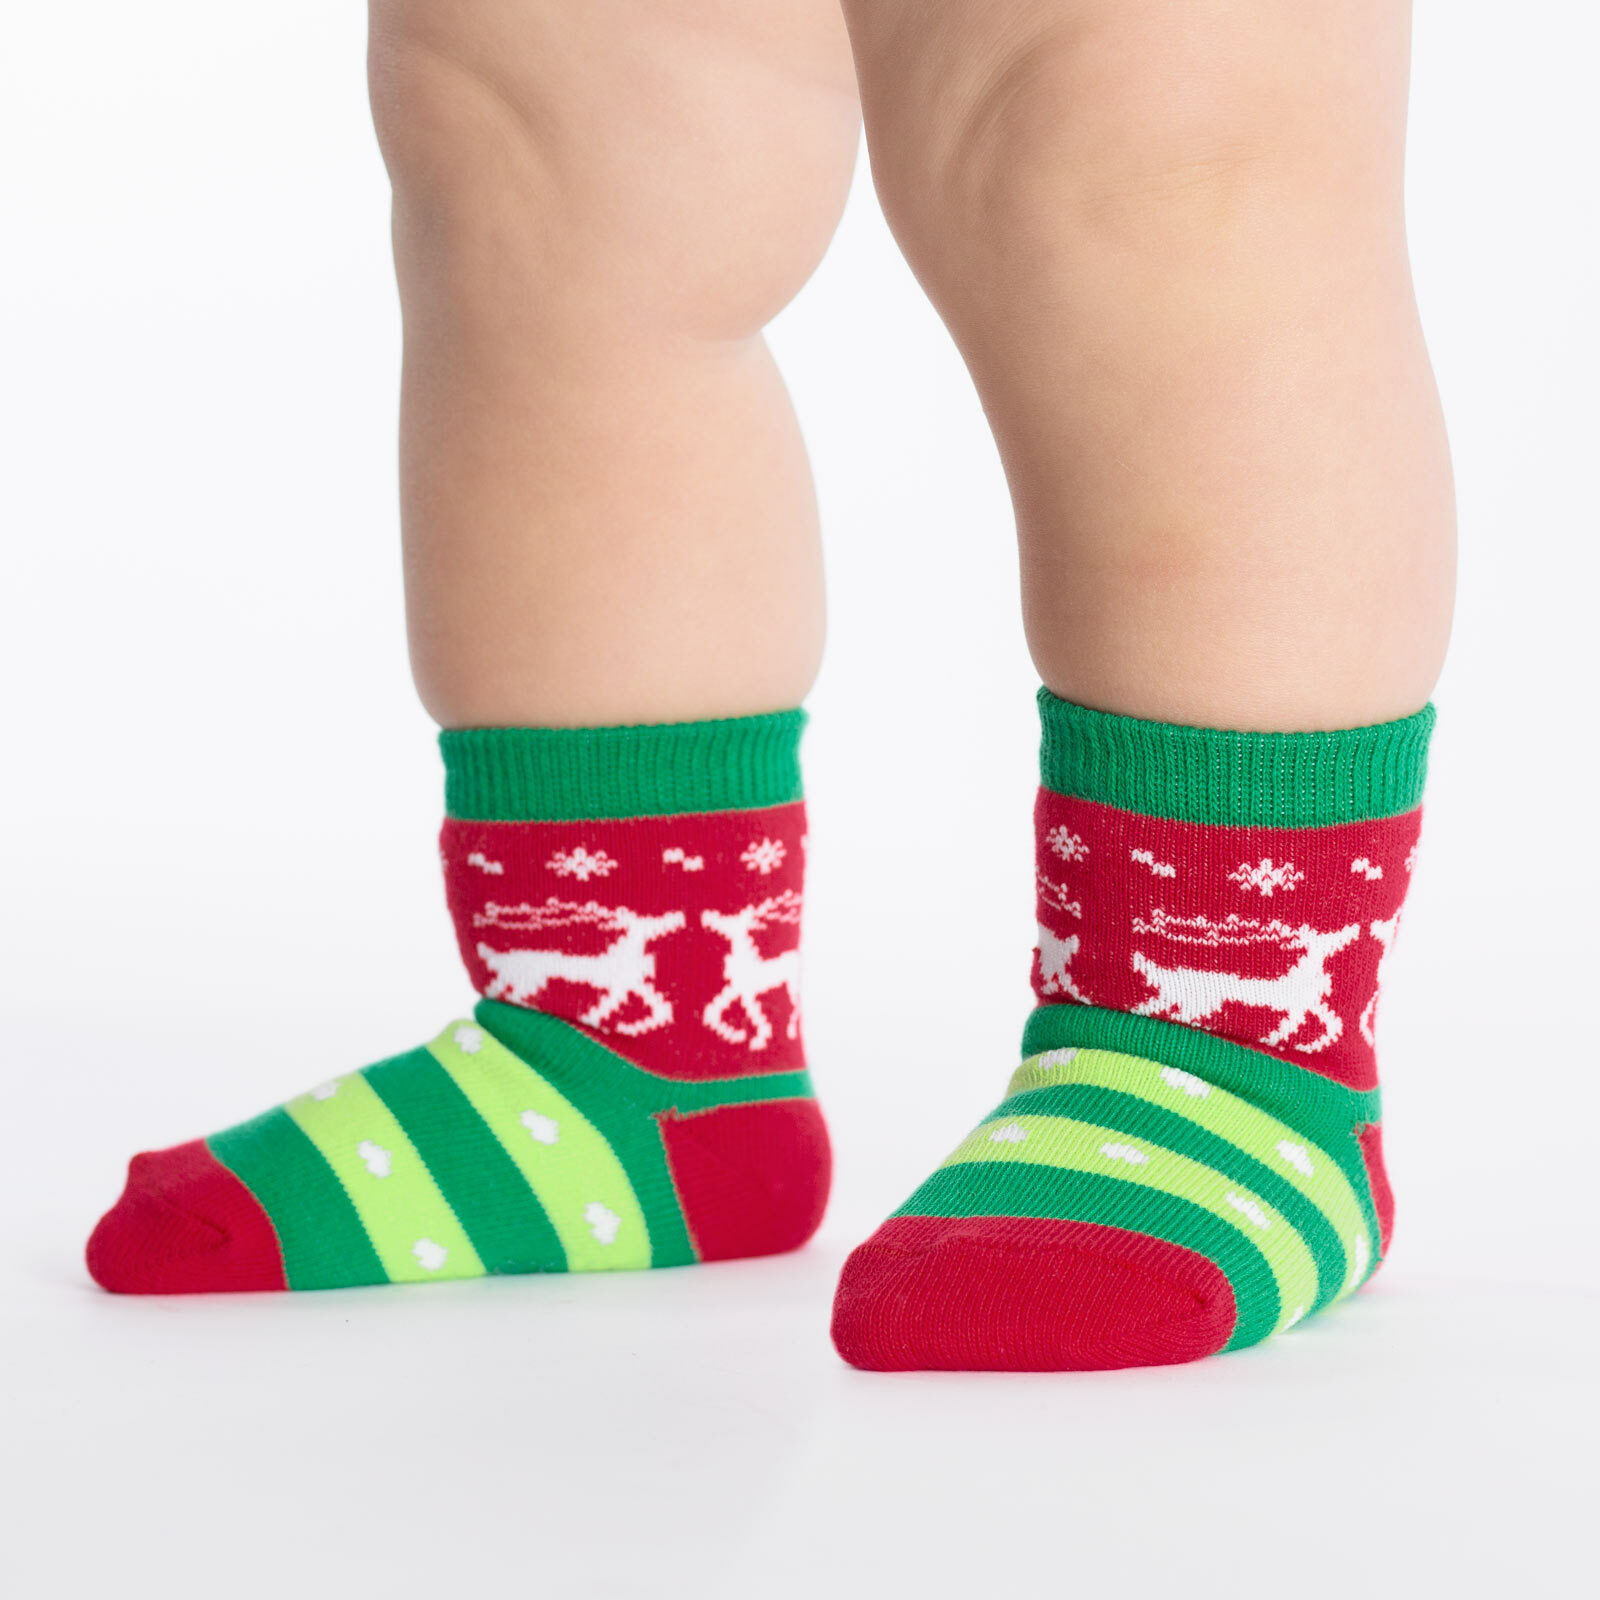 Tacky Holiday Sweater - Reindeer Fair Isle Winter Sweater Crew Socks Red and Green - Toddler in Red